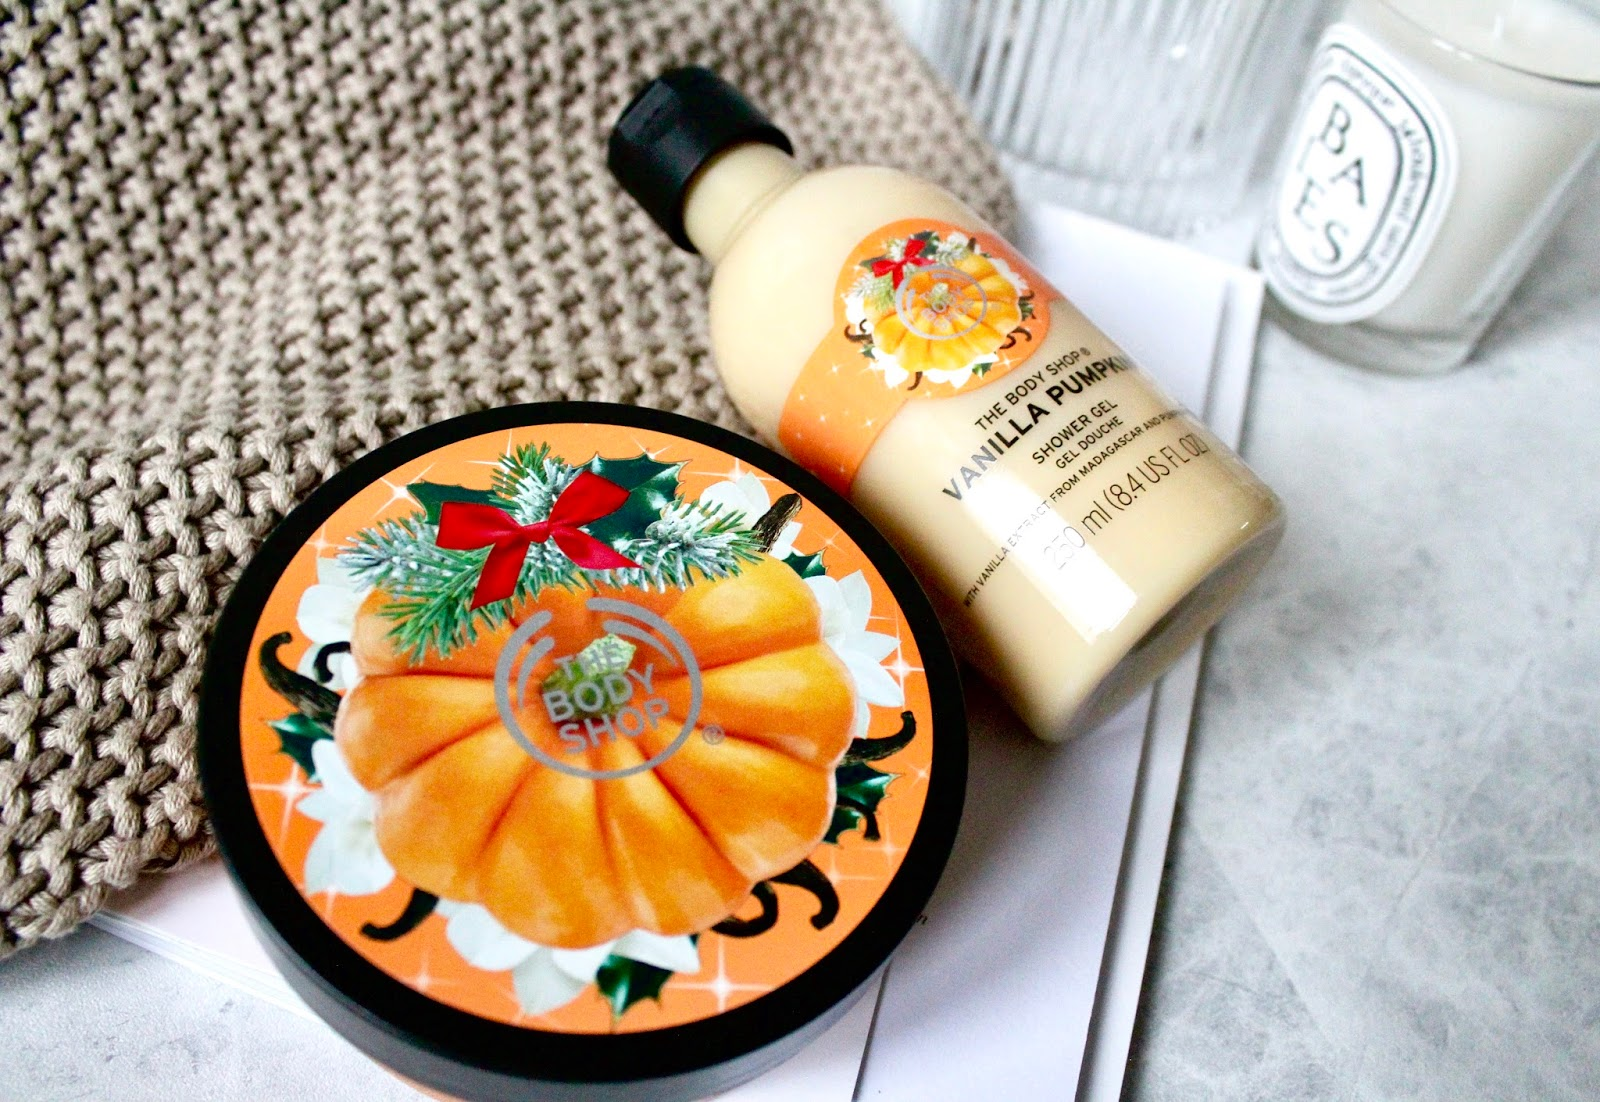 The Body Shop Vanilla Pumpkin Range